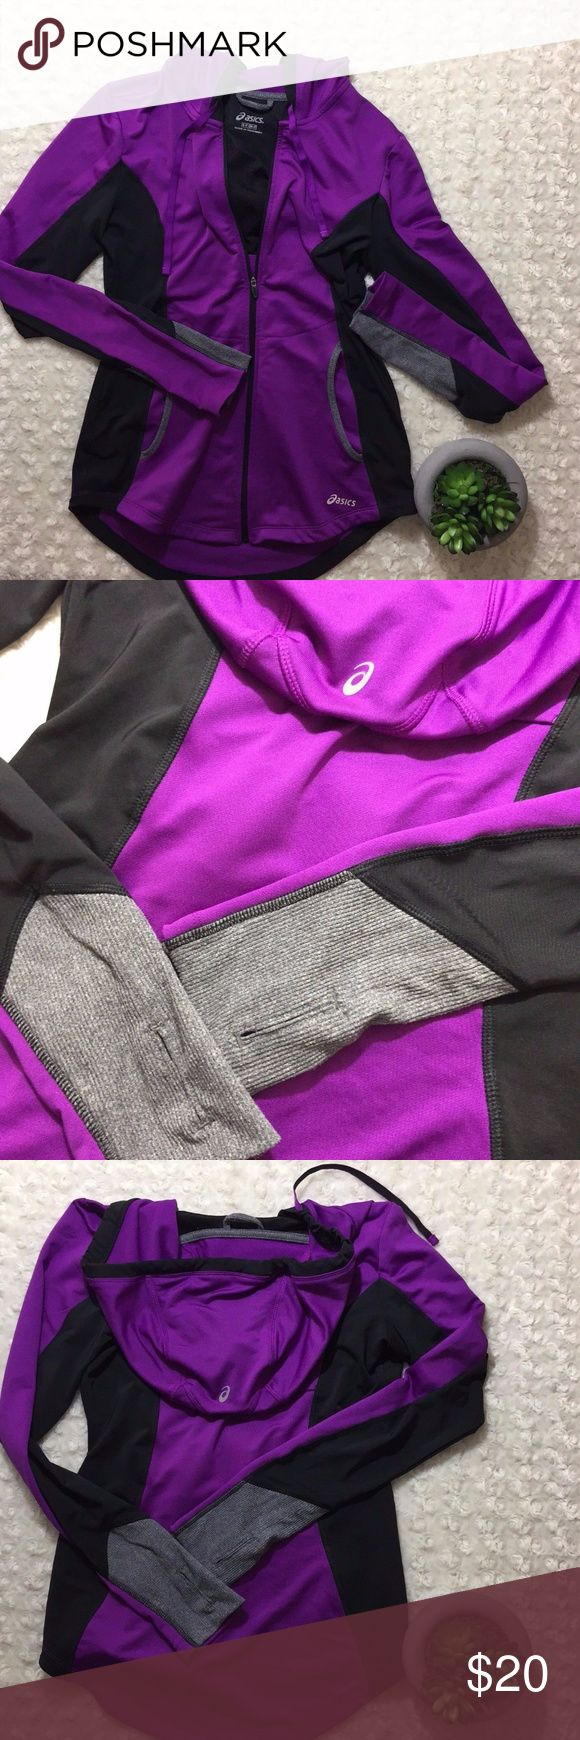 Asics Womens Purple and Black Zip Up Hoodie S In great used condition.  Measurements: Length- 26 inch Bust- 37 inch Sleeve- 25 inch Asics Tops Sweatshirts & Hoodies